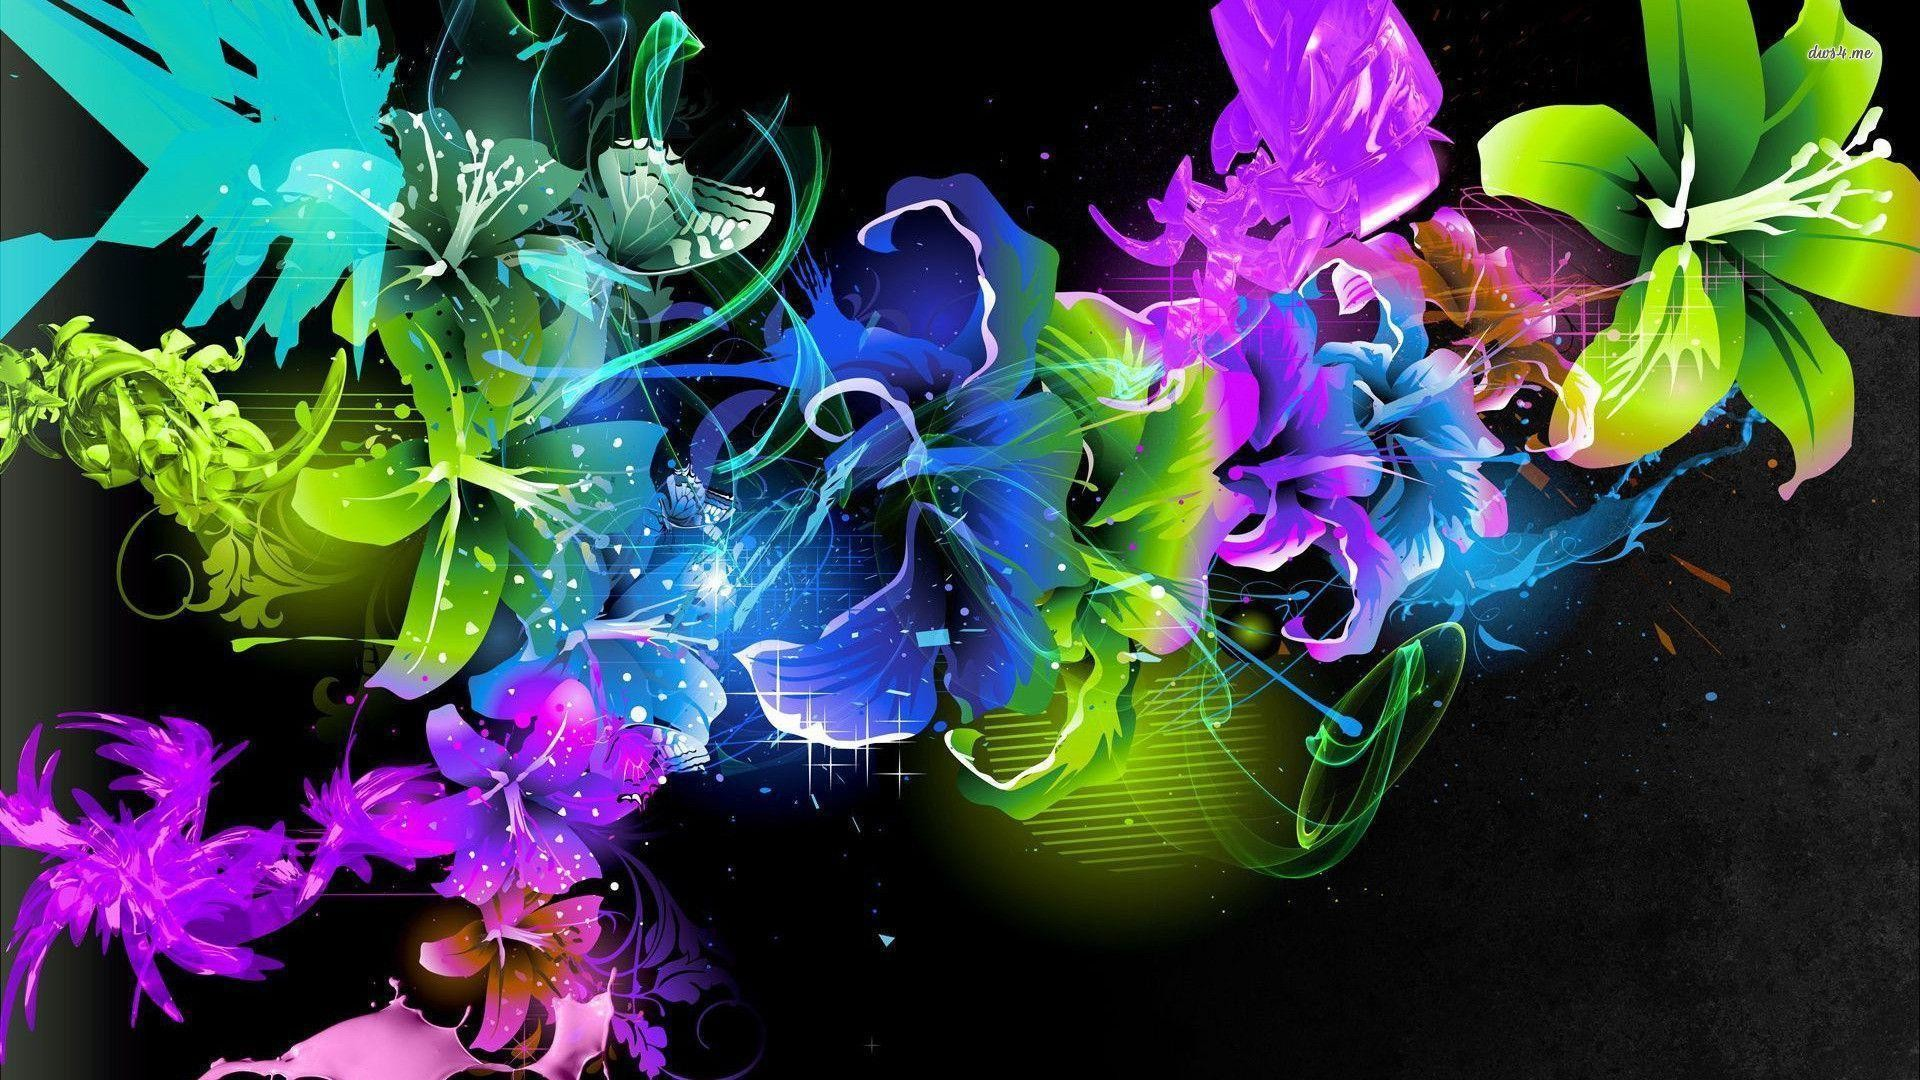 1920x1080 Colorful-Flowers-wallpaper | HD Wallpapers|Nature Wallpapers